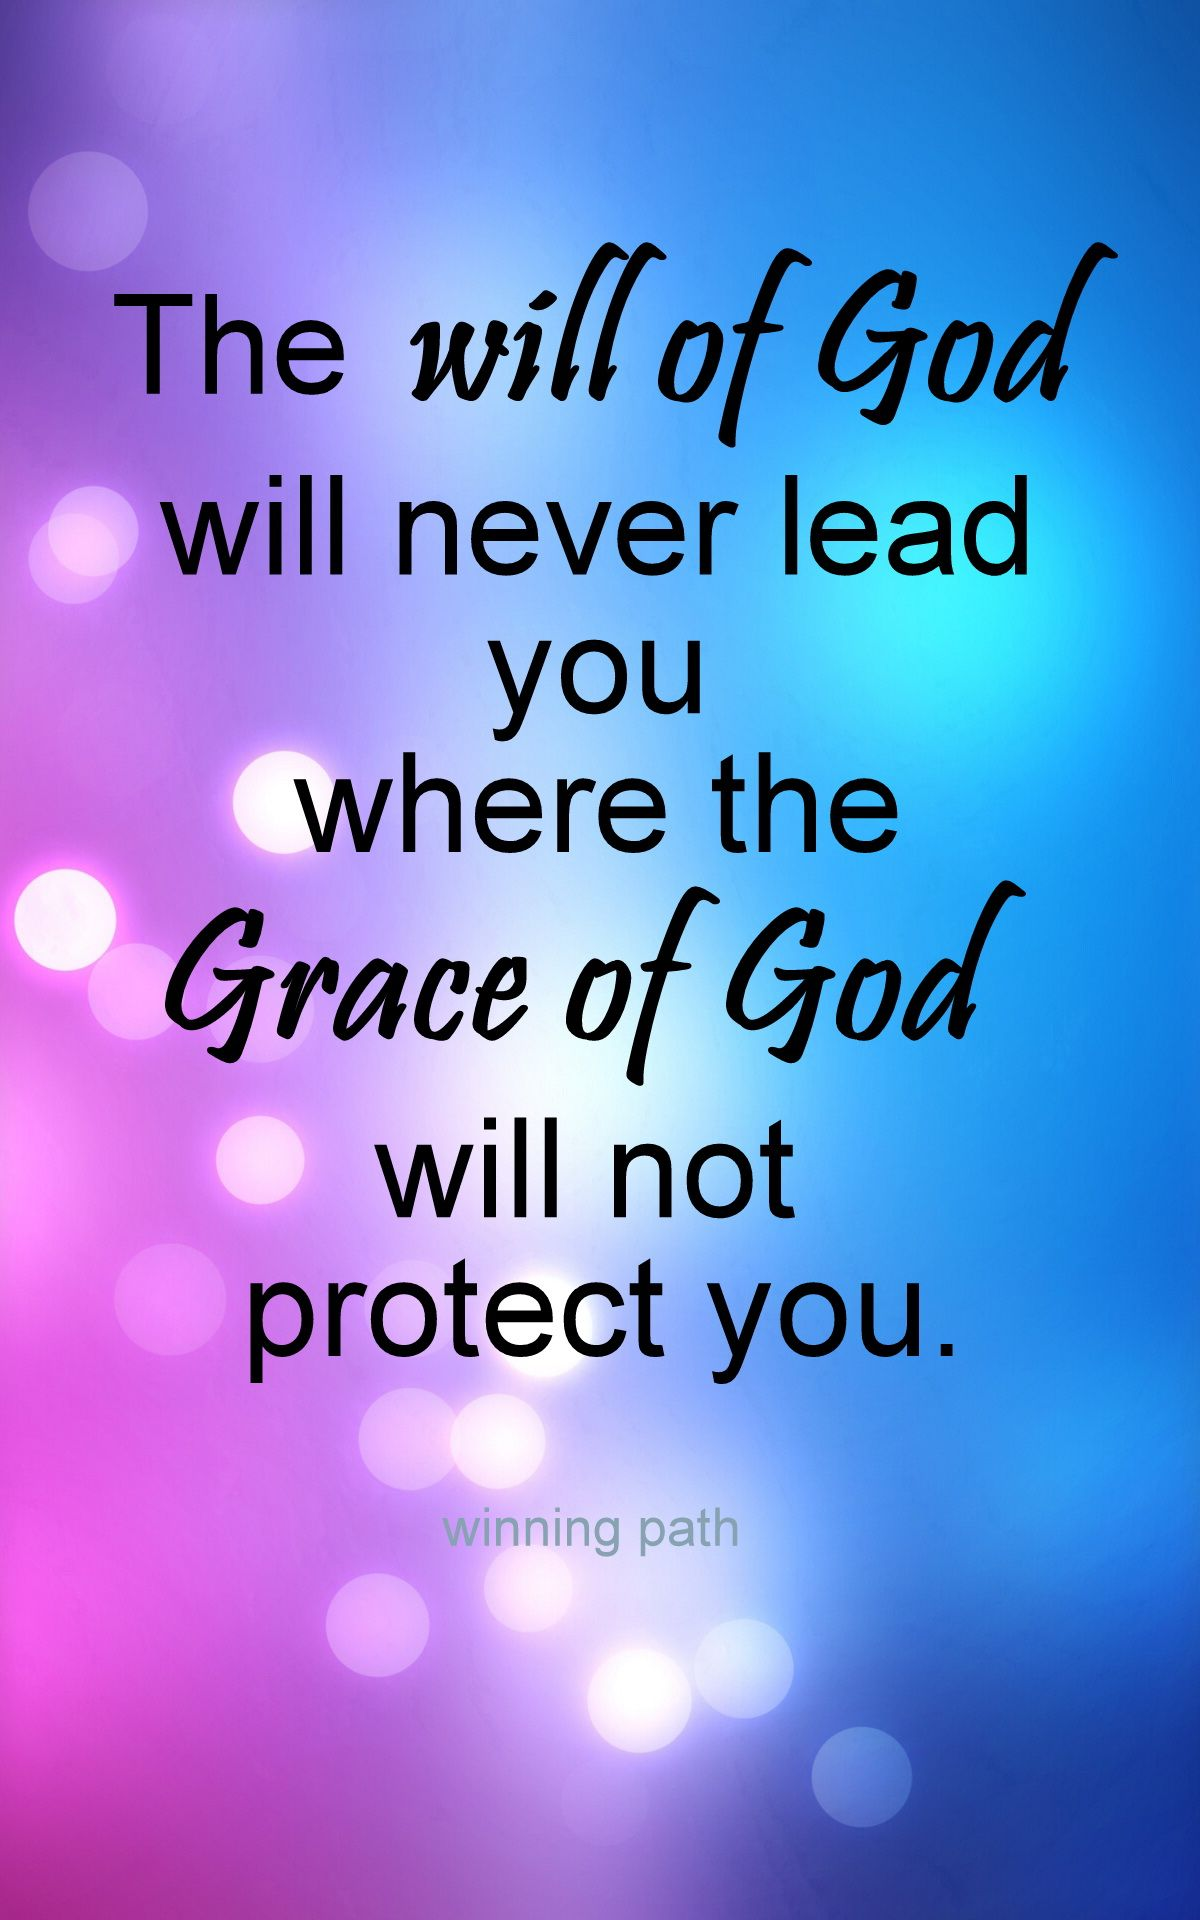 The will of God will never lead you where the Grace of God will not protect